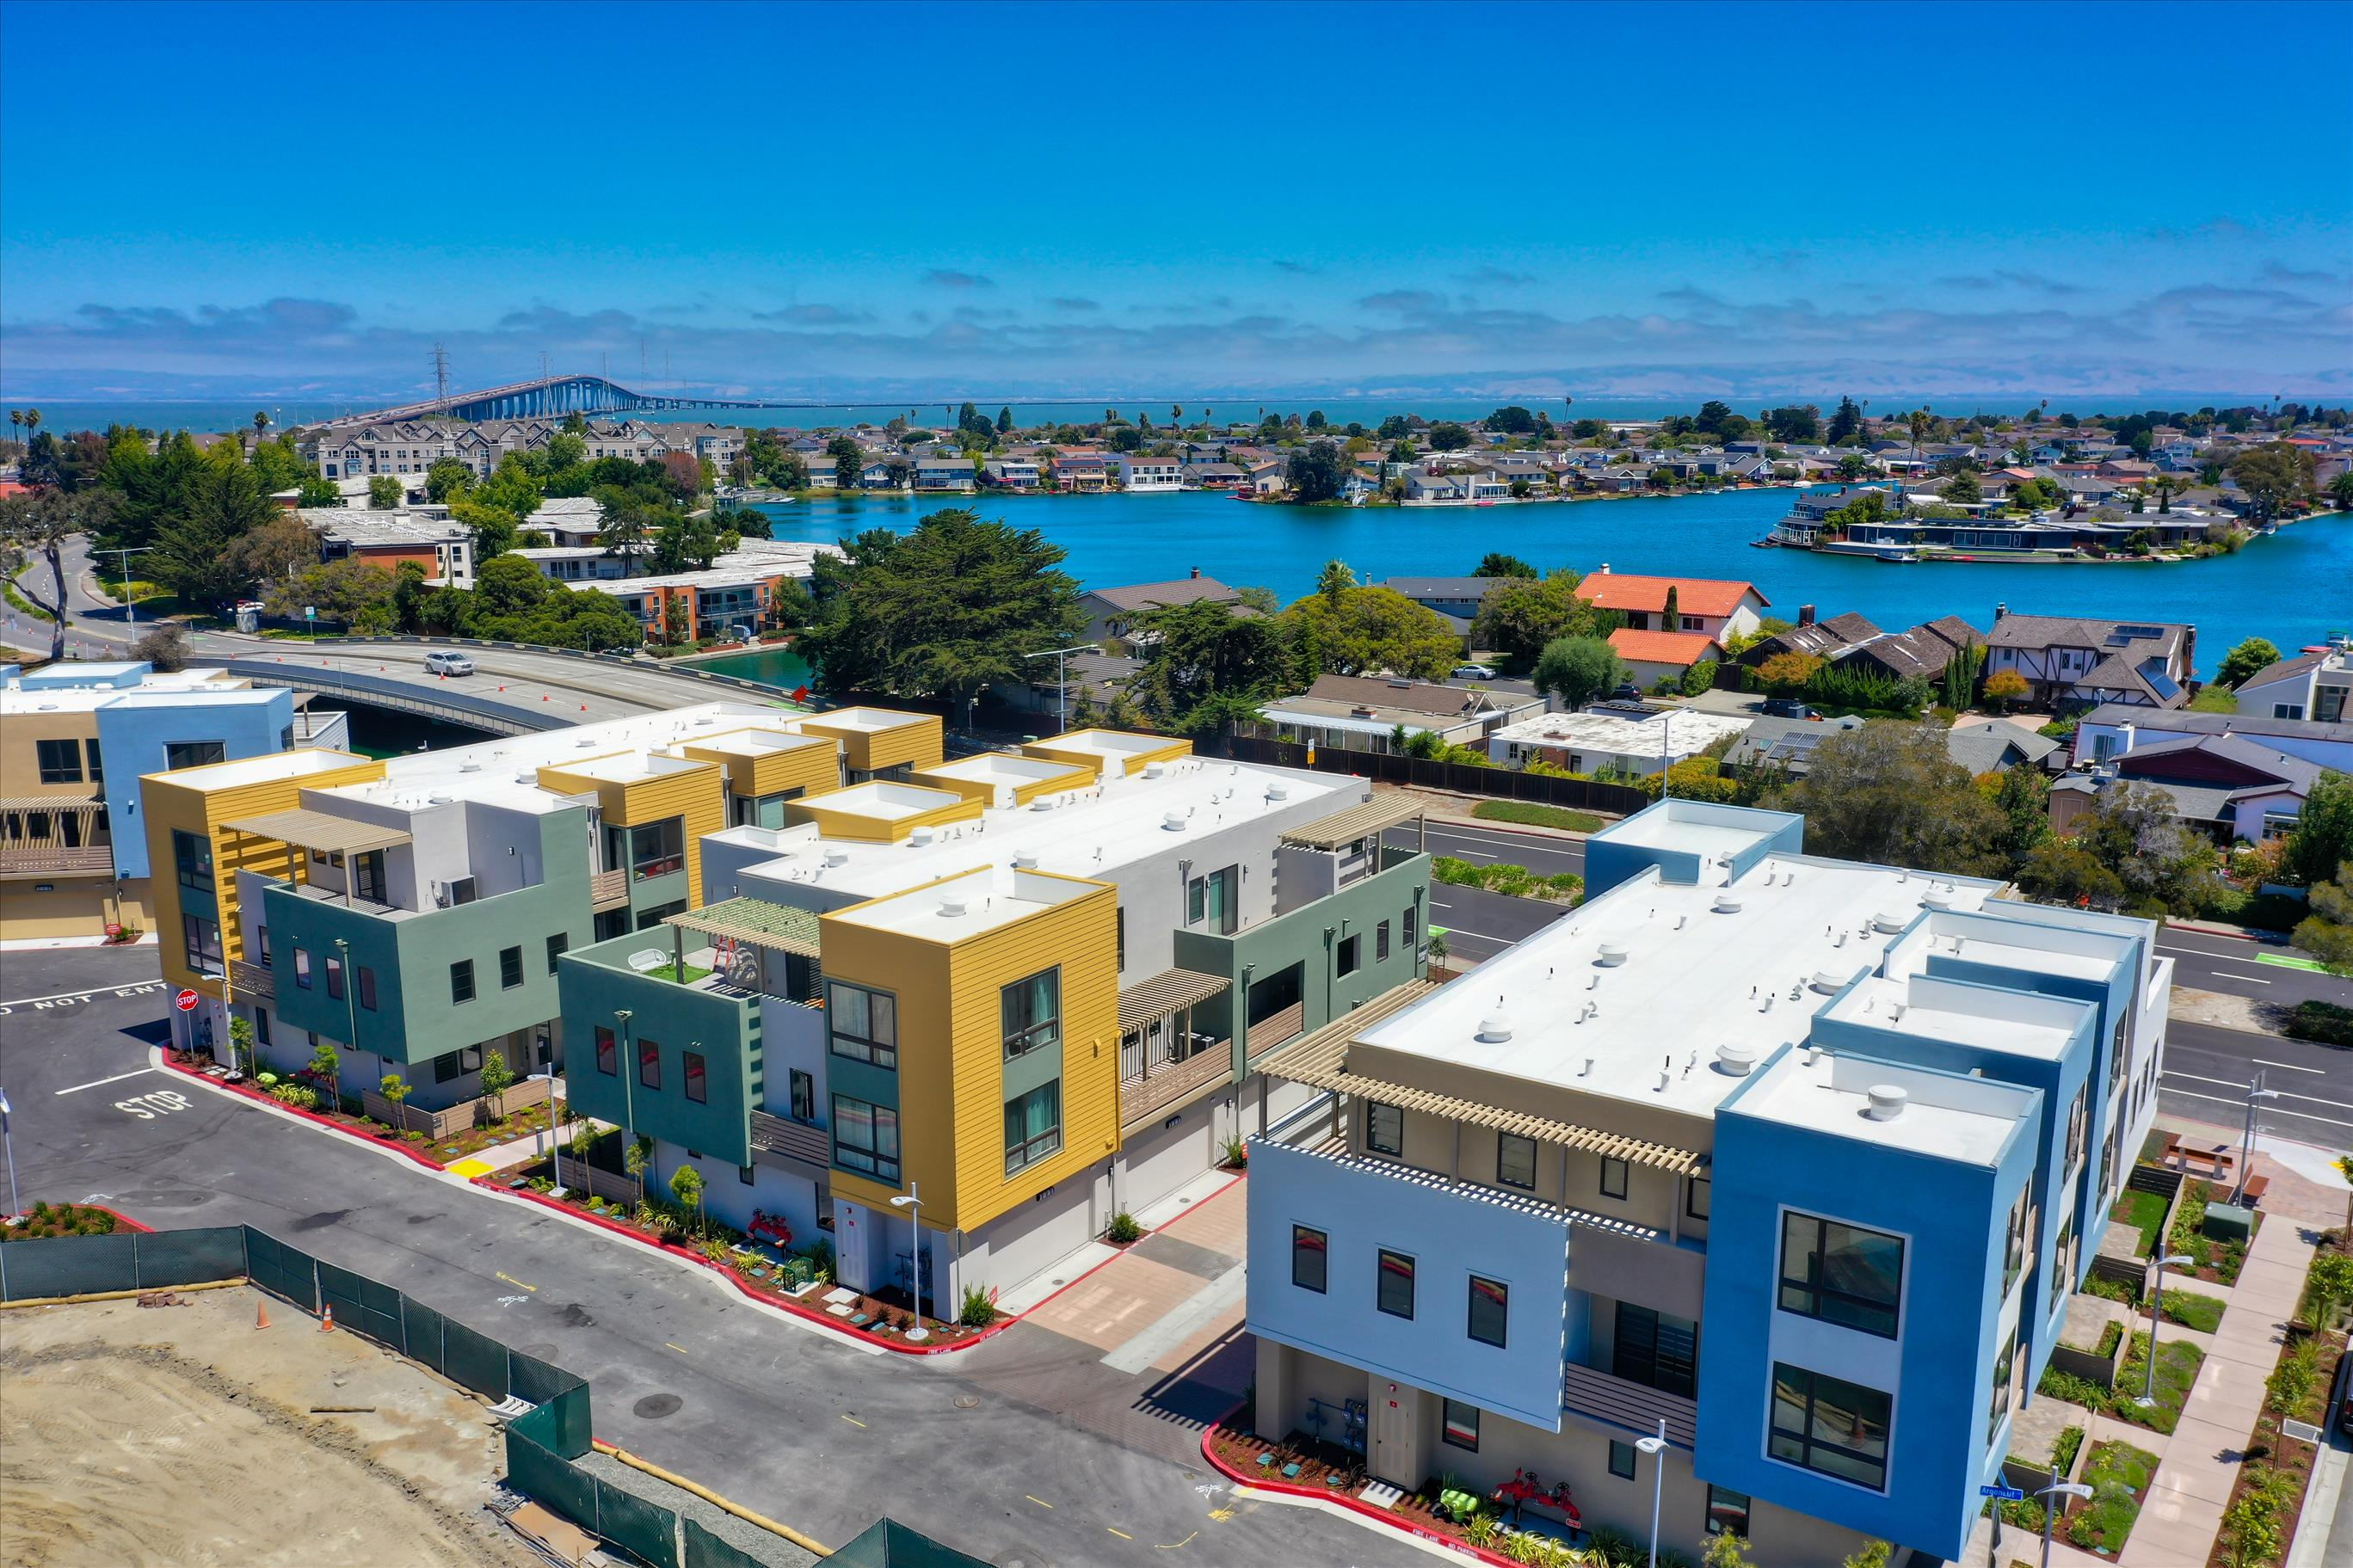 Waverly Cove - New Townhomes in Foster City